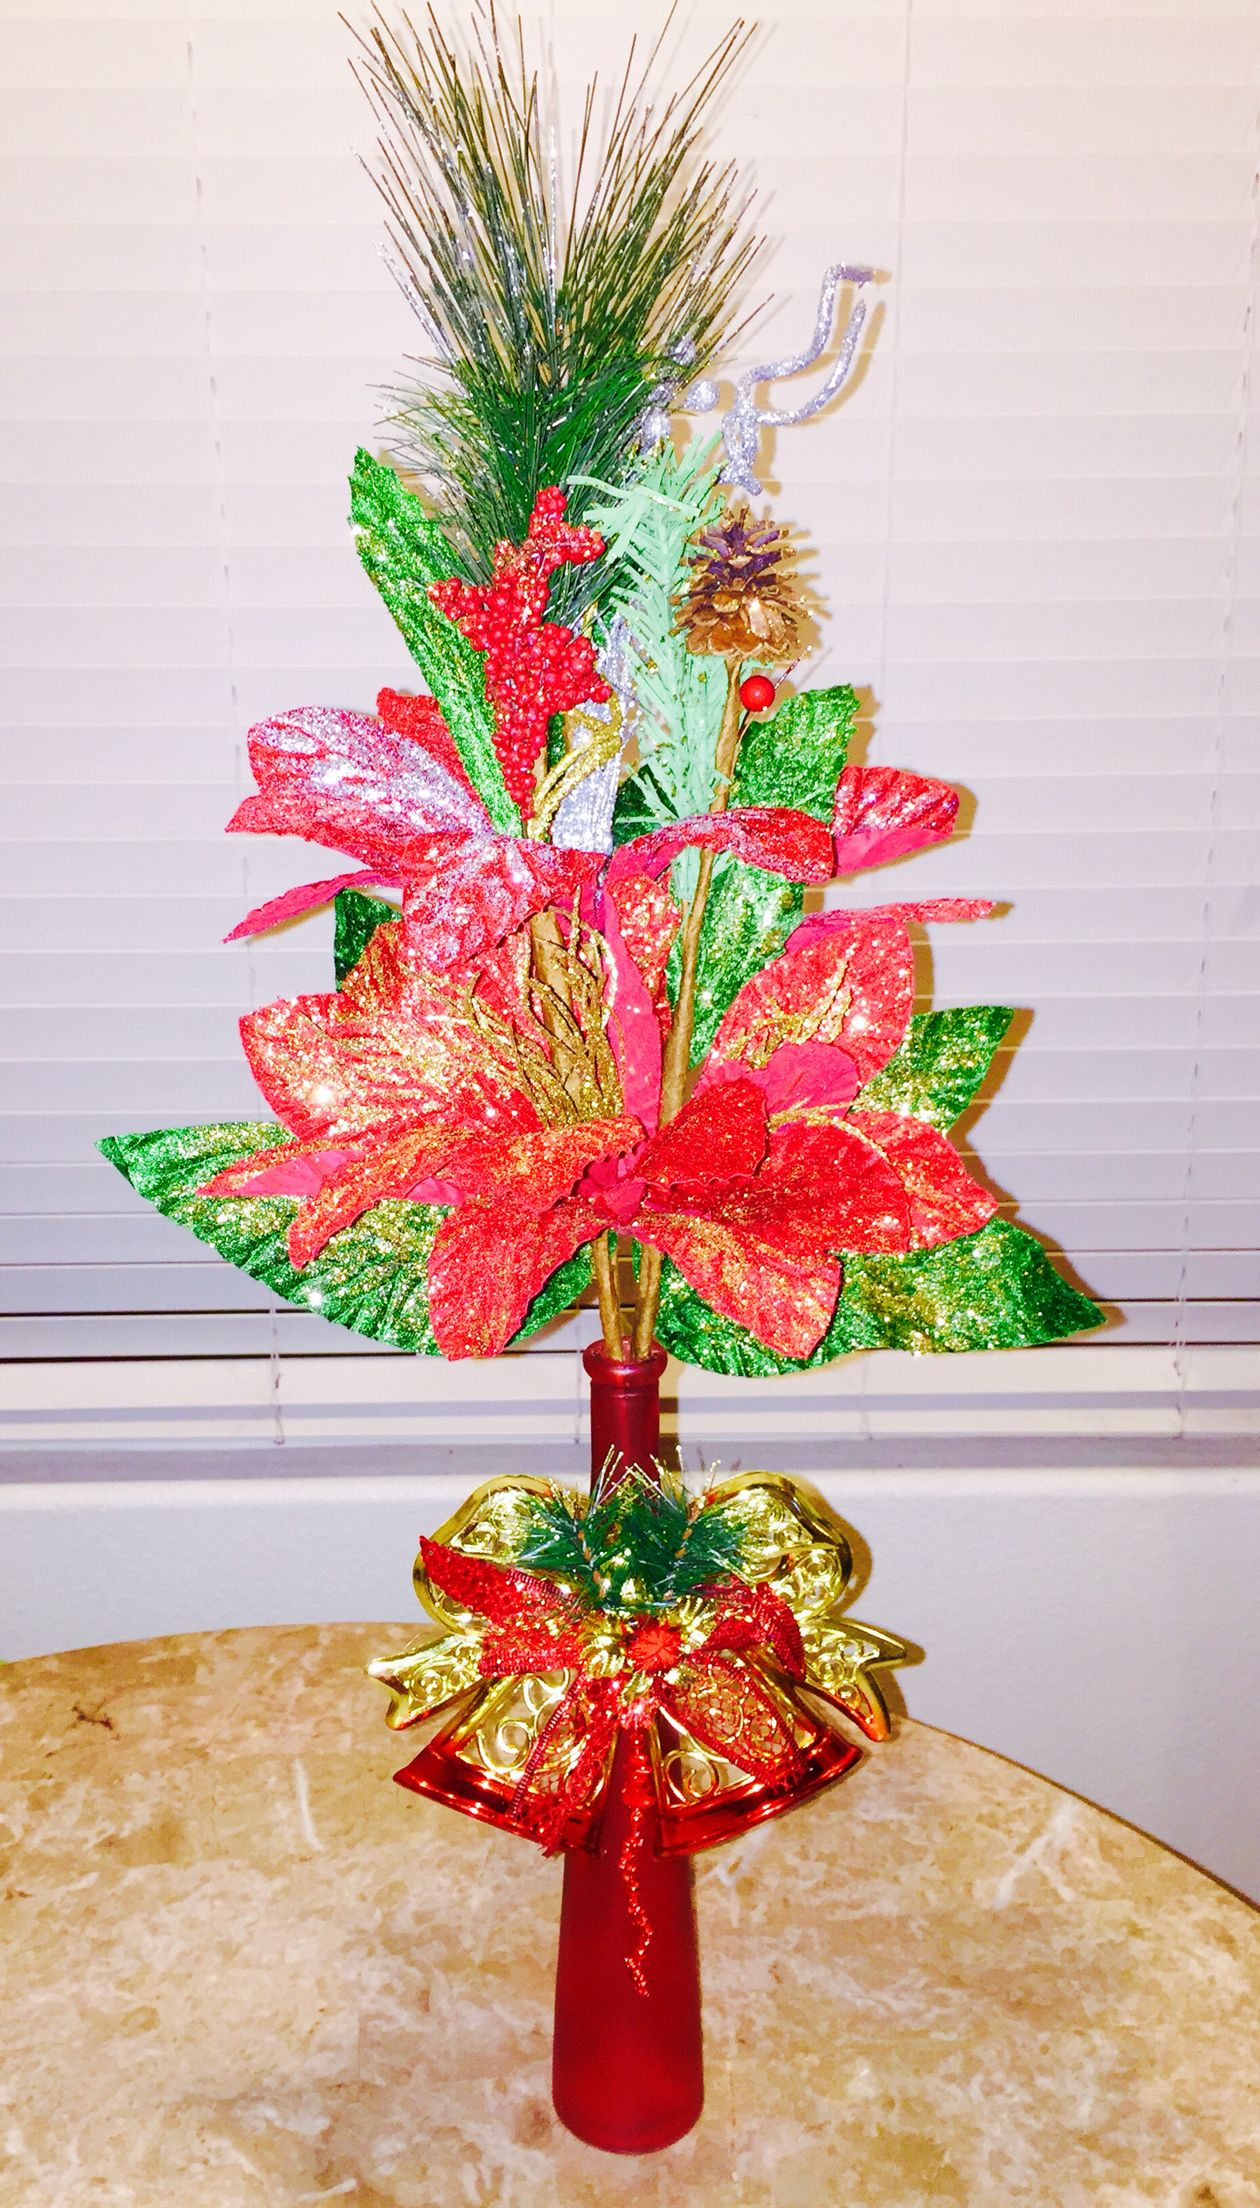 diy christmas centerpiece for under 5 find all your materials at the 99 cent - 99 Cent Store Christmas Hours